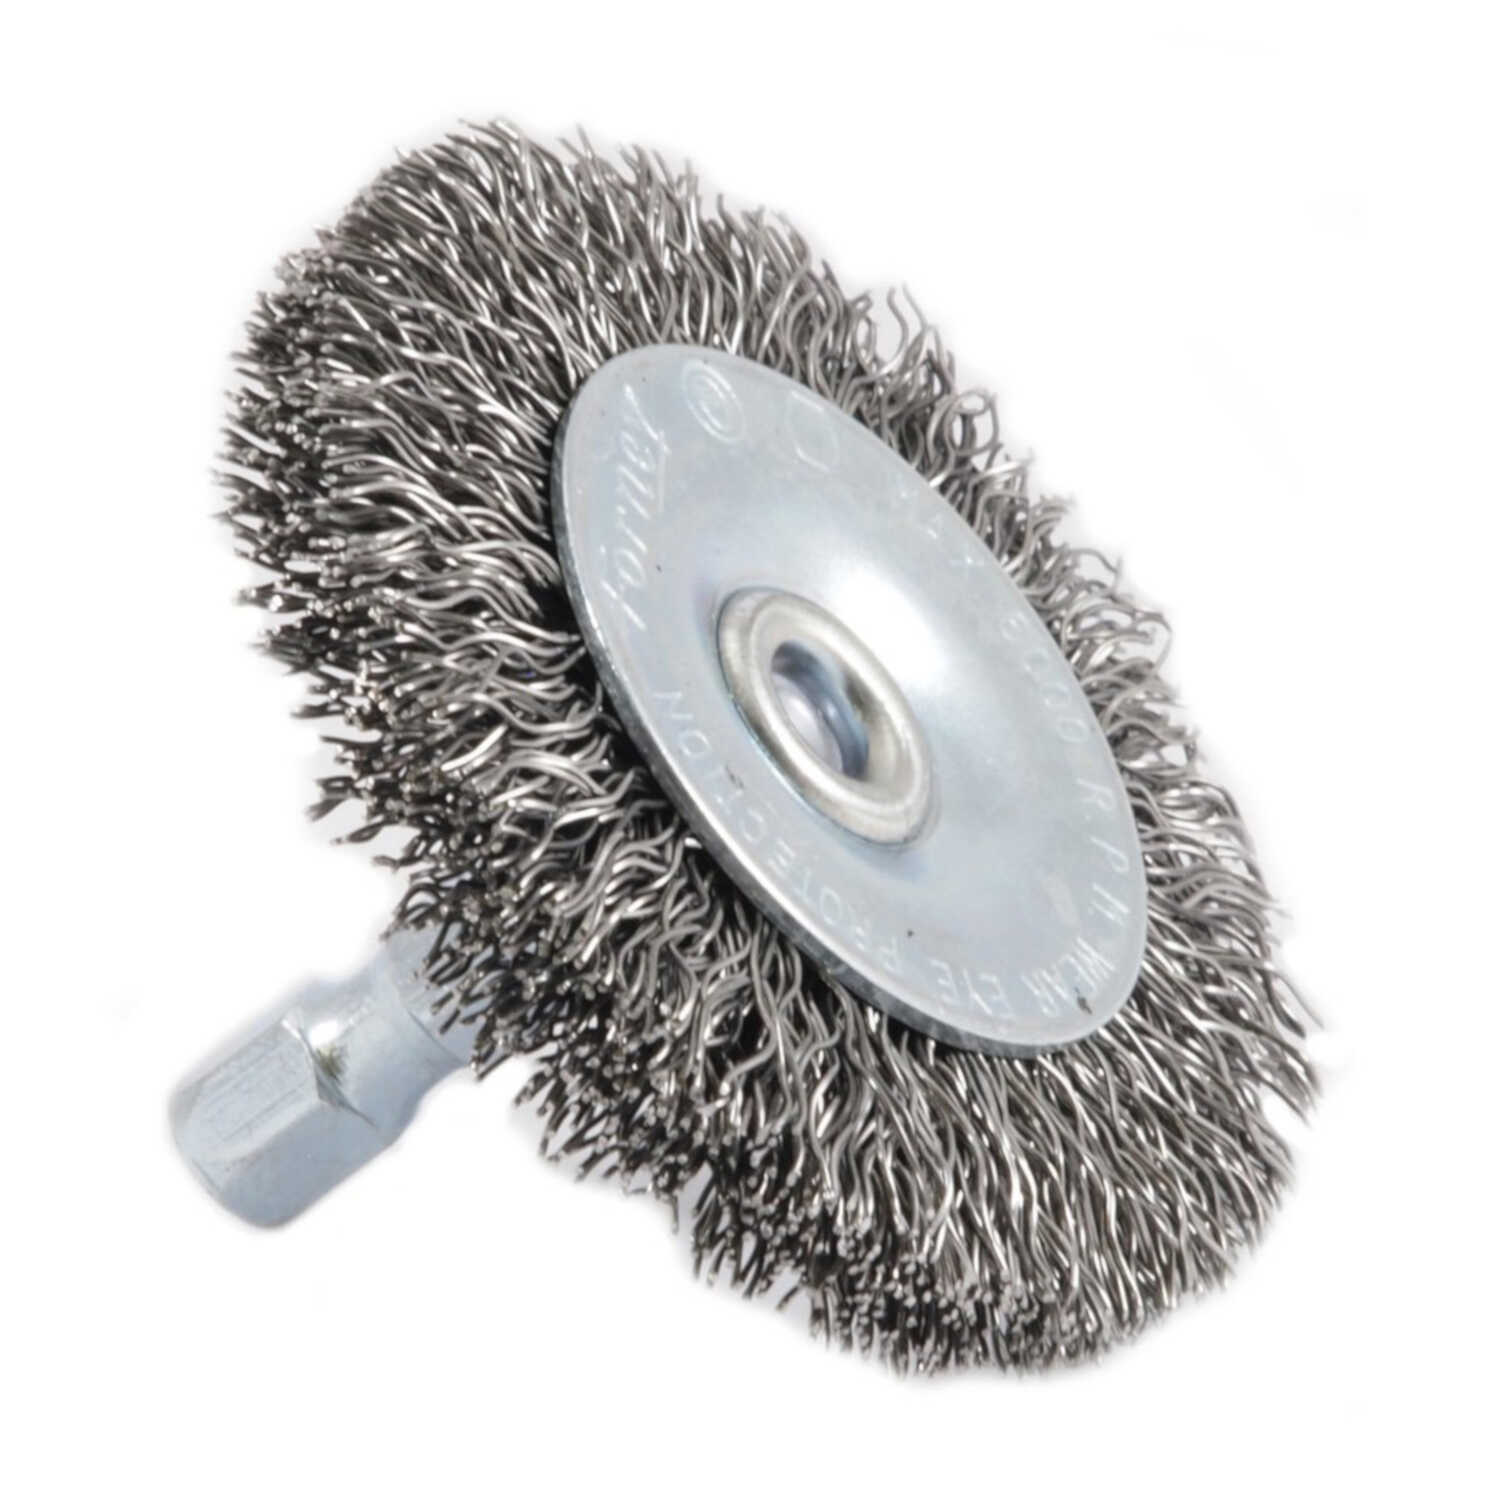 Forney  2 in. Crimped  Wire Wheel Brush  Metal  6000 rpm 1 pc.